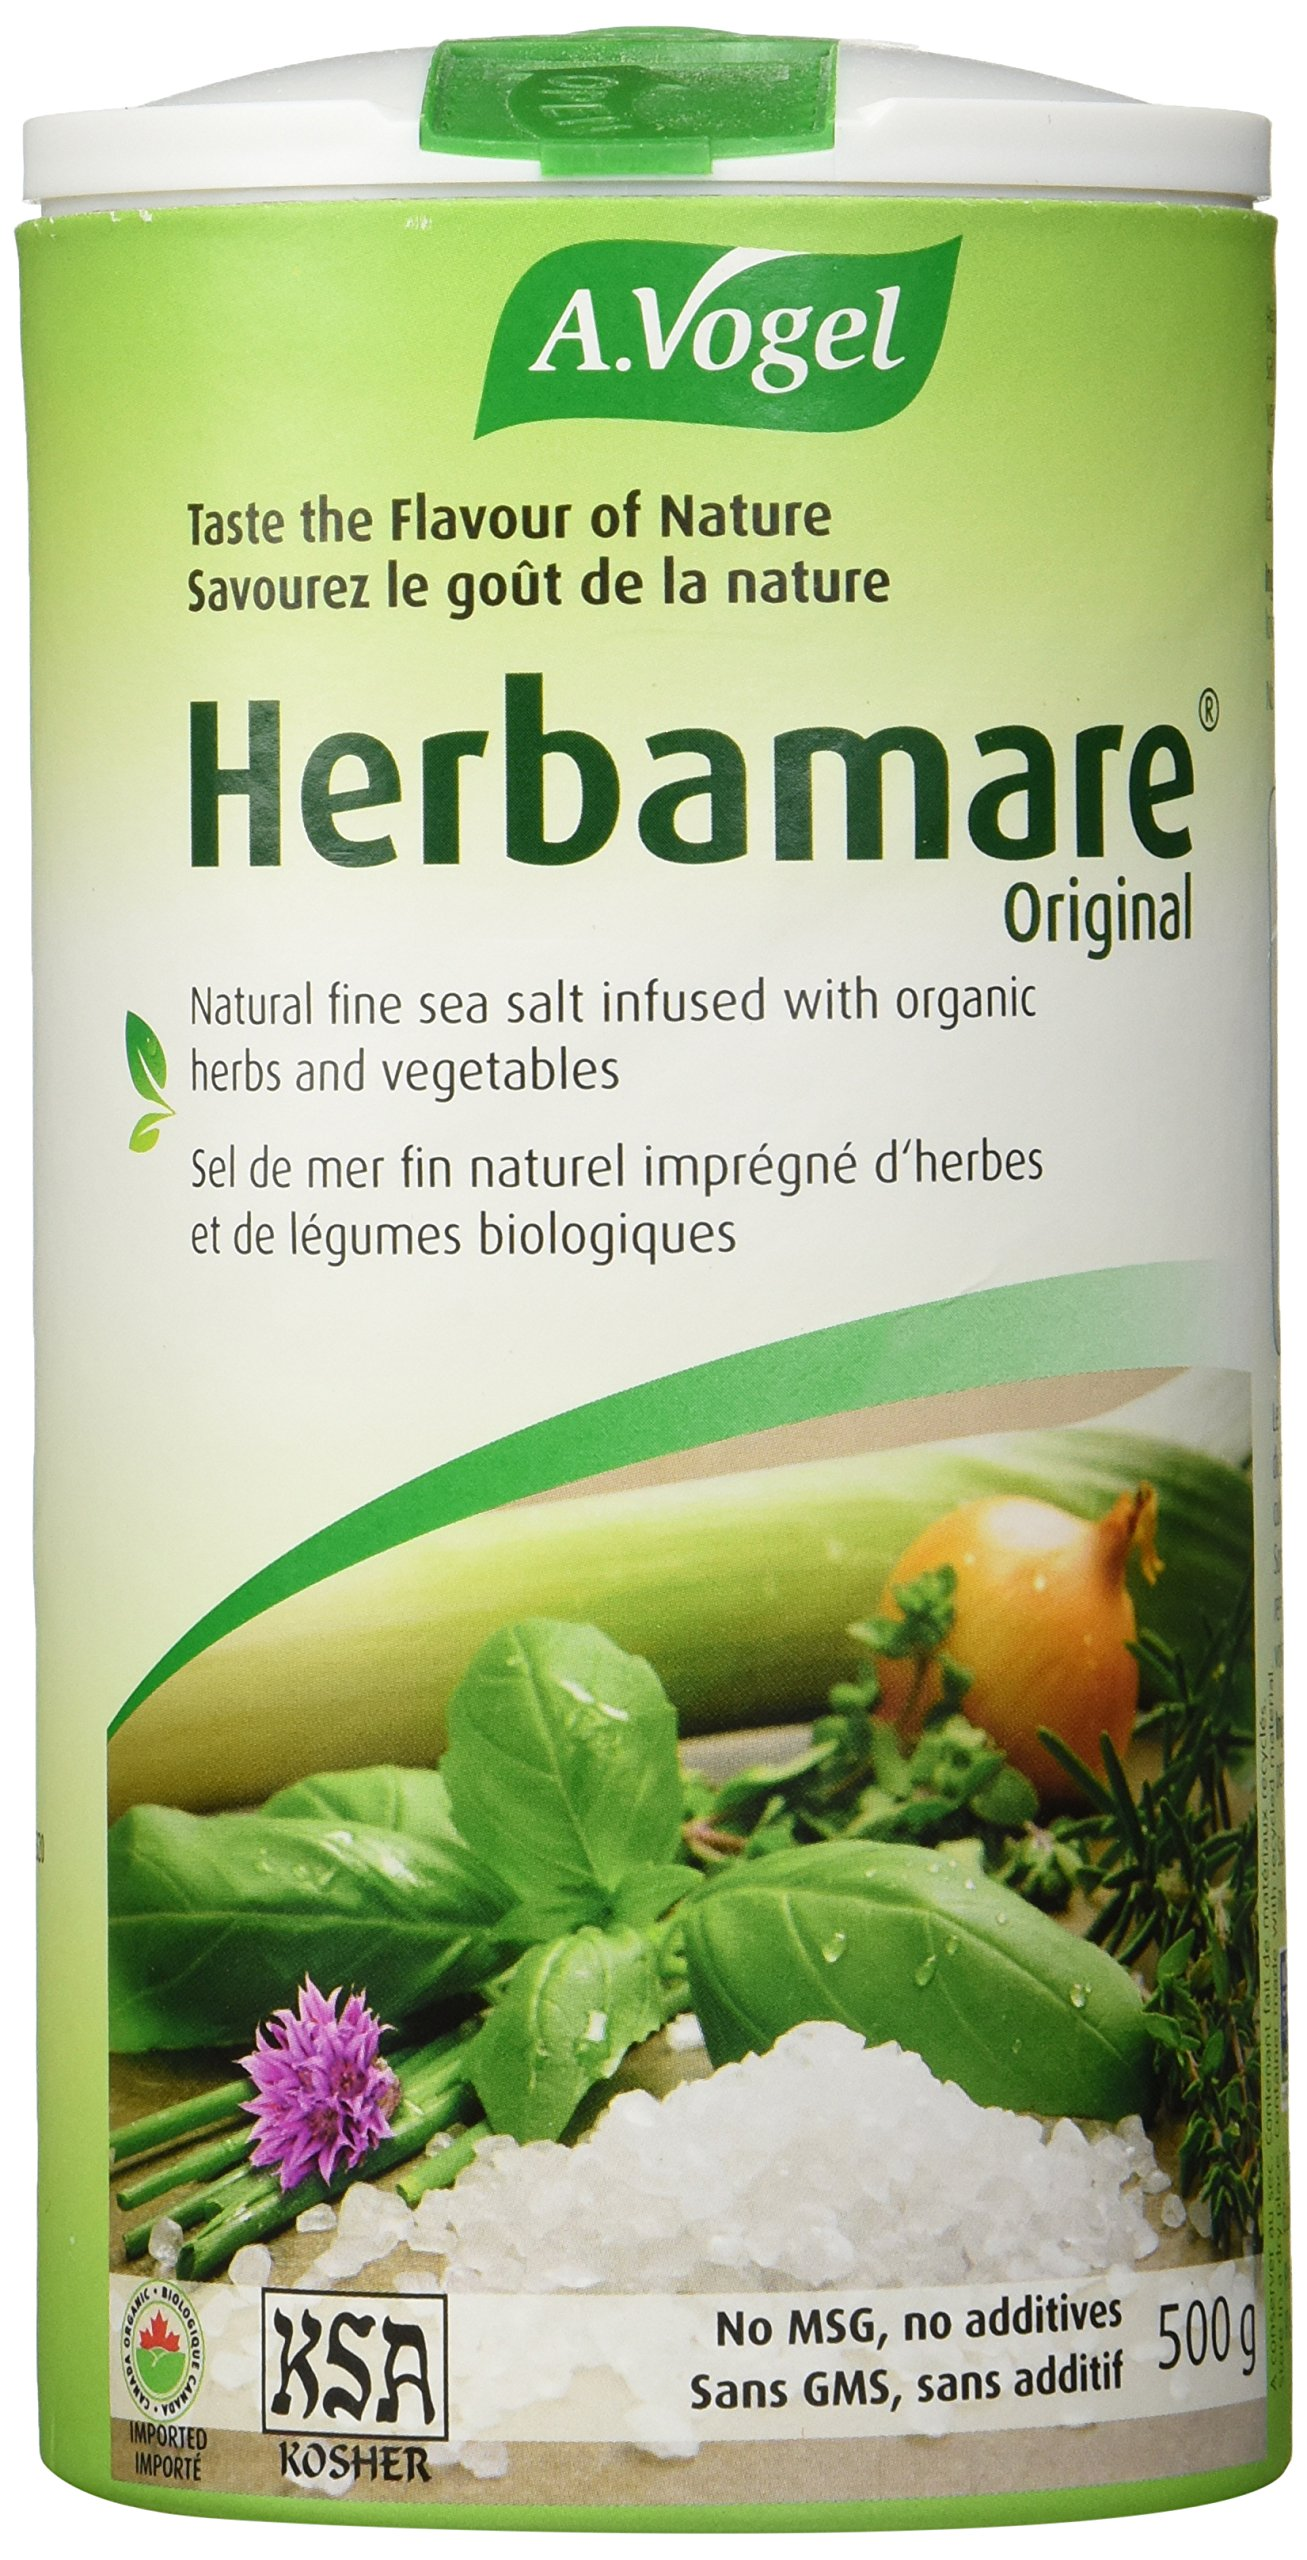 A. Vogel Herbamare Original Sea Salt, 500 g